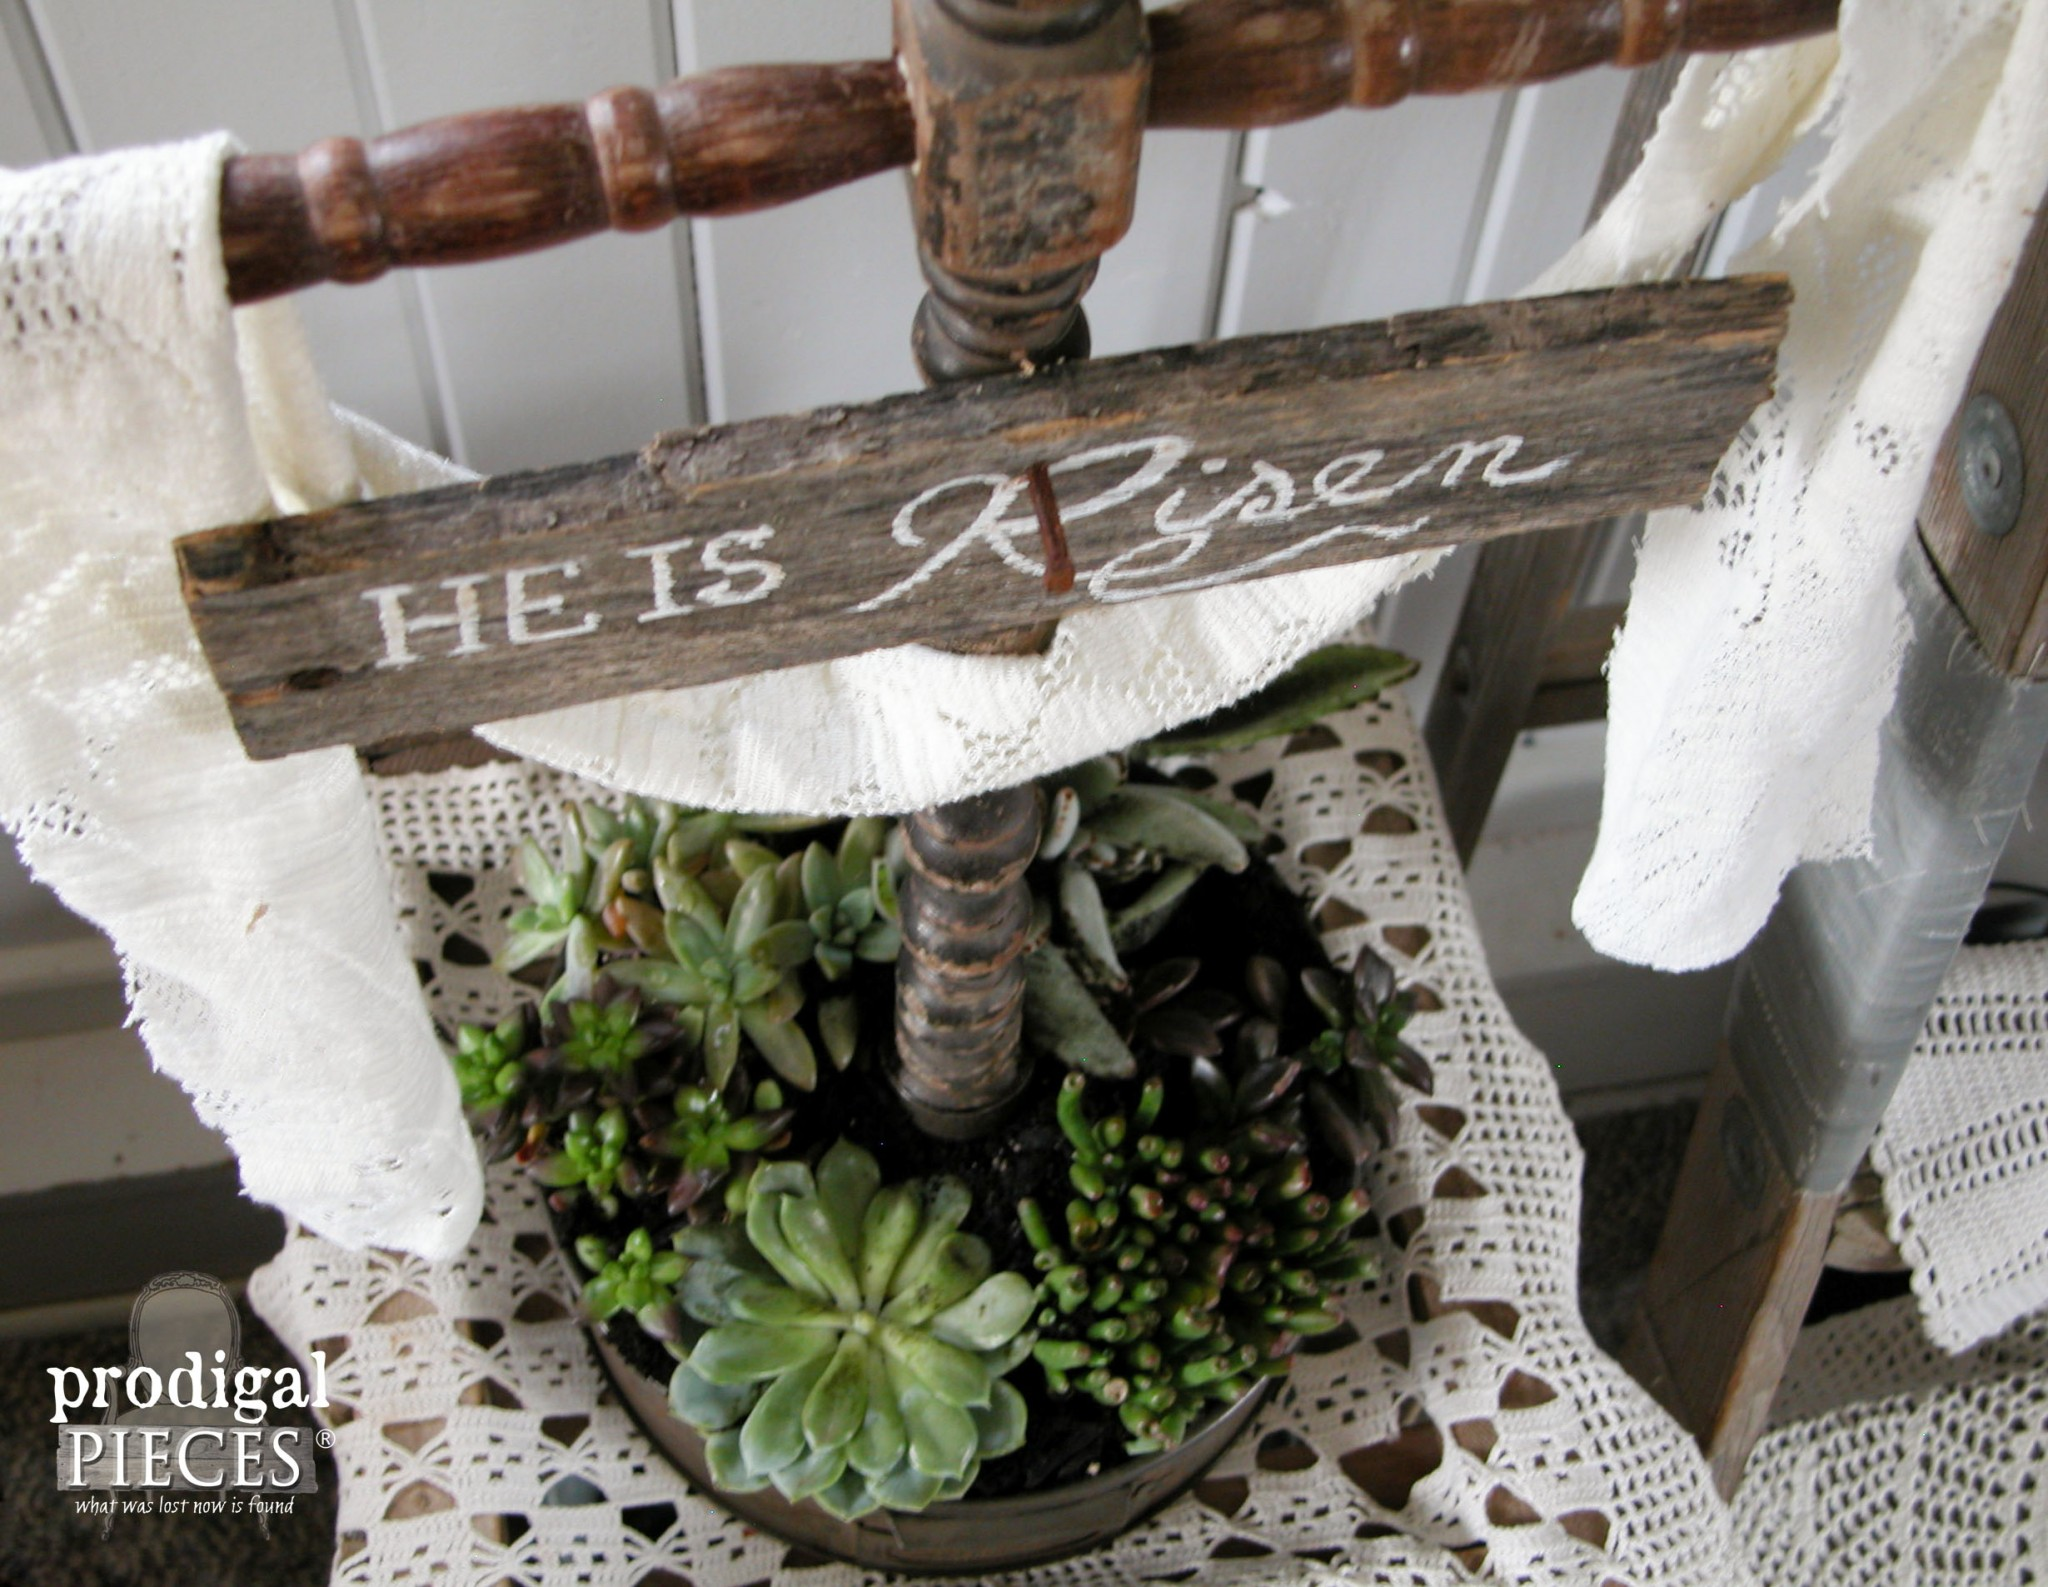 Vintage Cake Pan turned Succulent Planter with Easter Cross by Prodigal Pieces   www.prodigalpieces.com